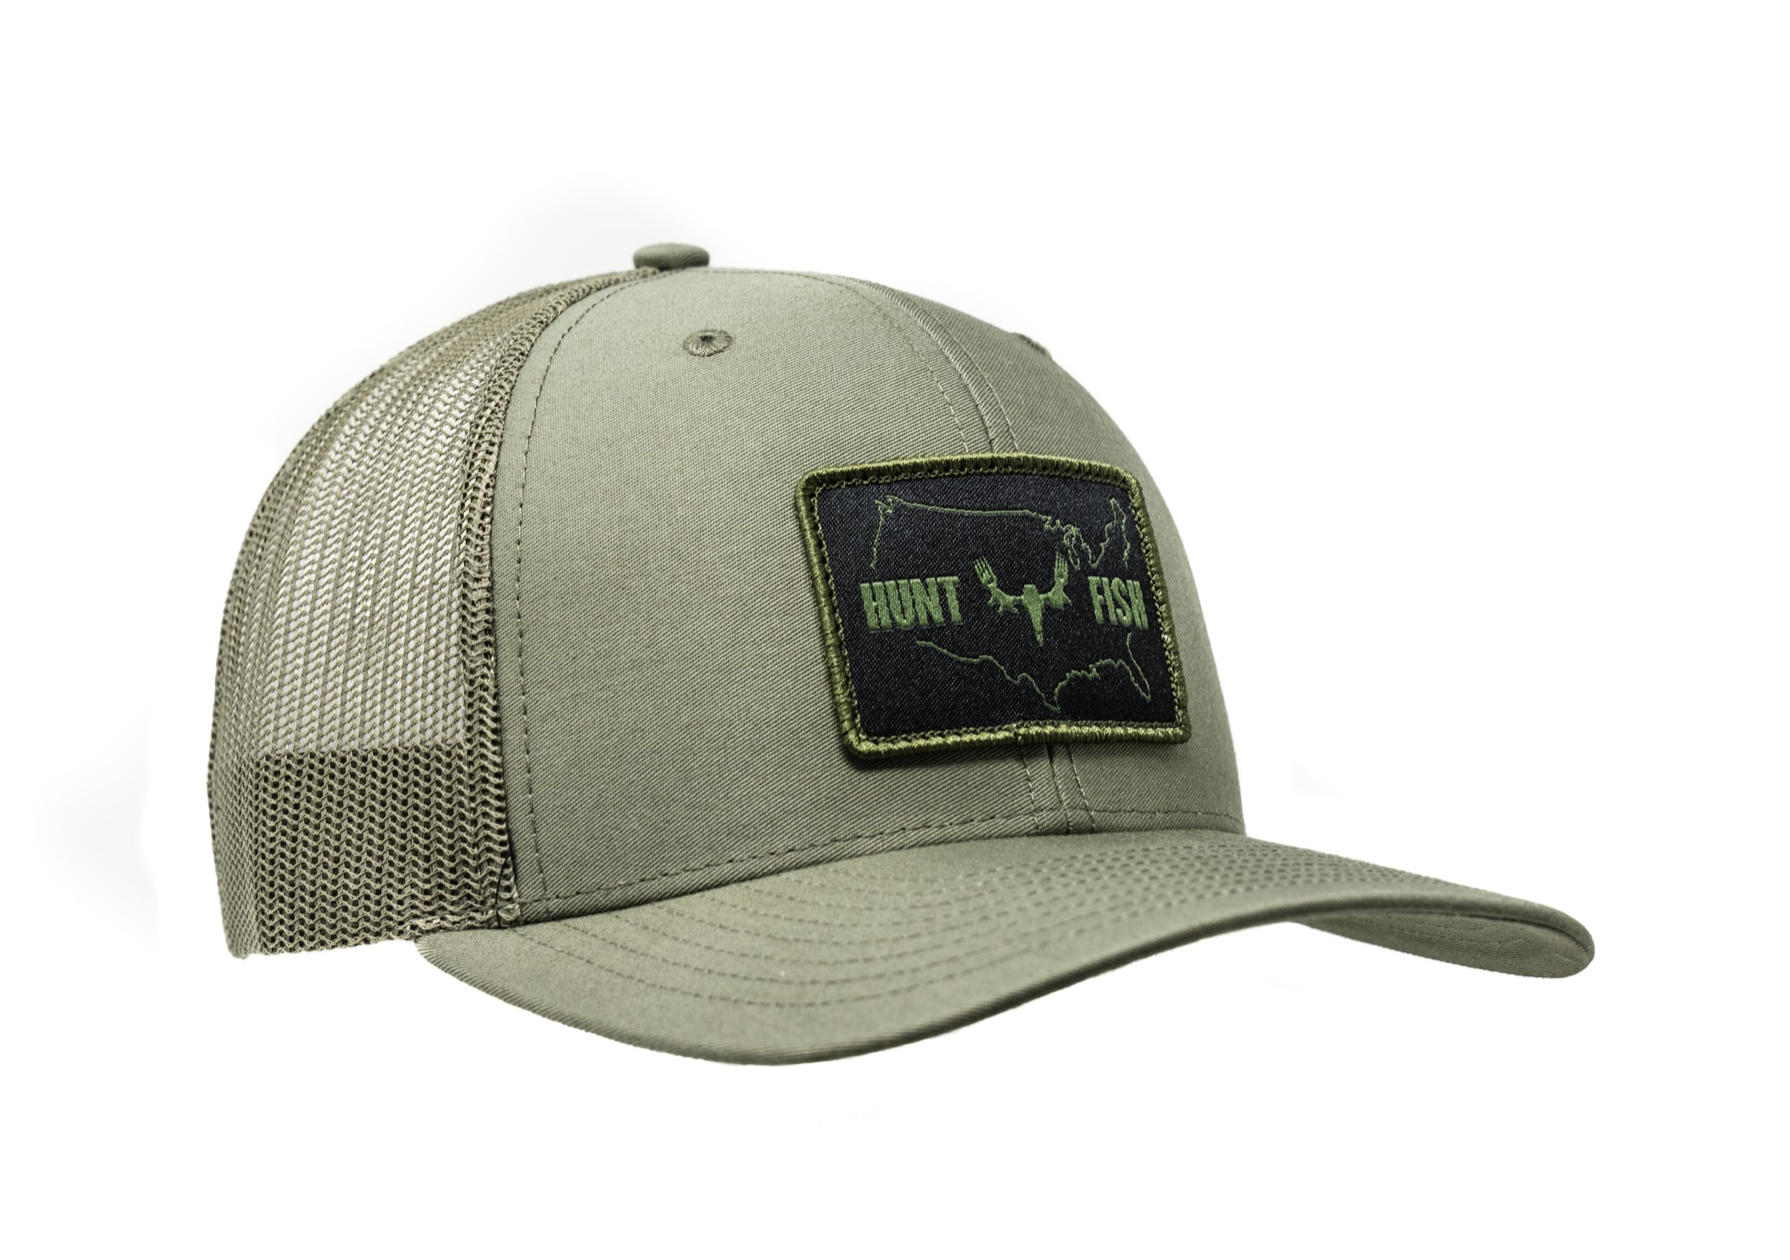 Hunt Fish Trucker - Loden